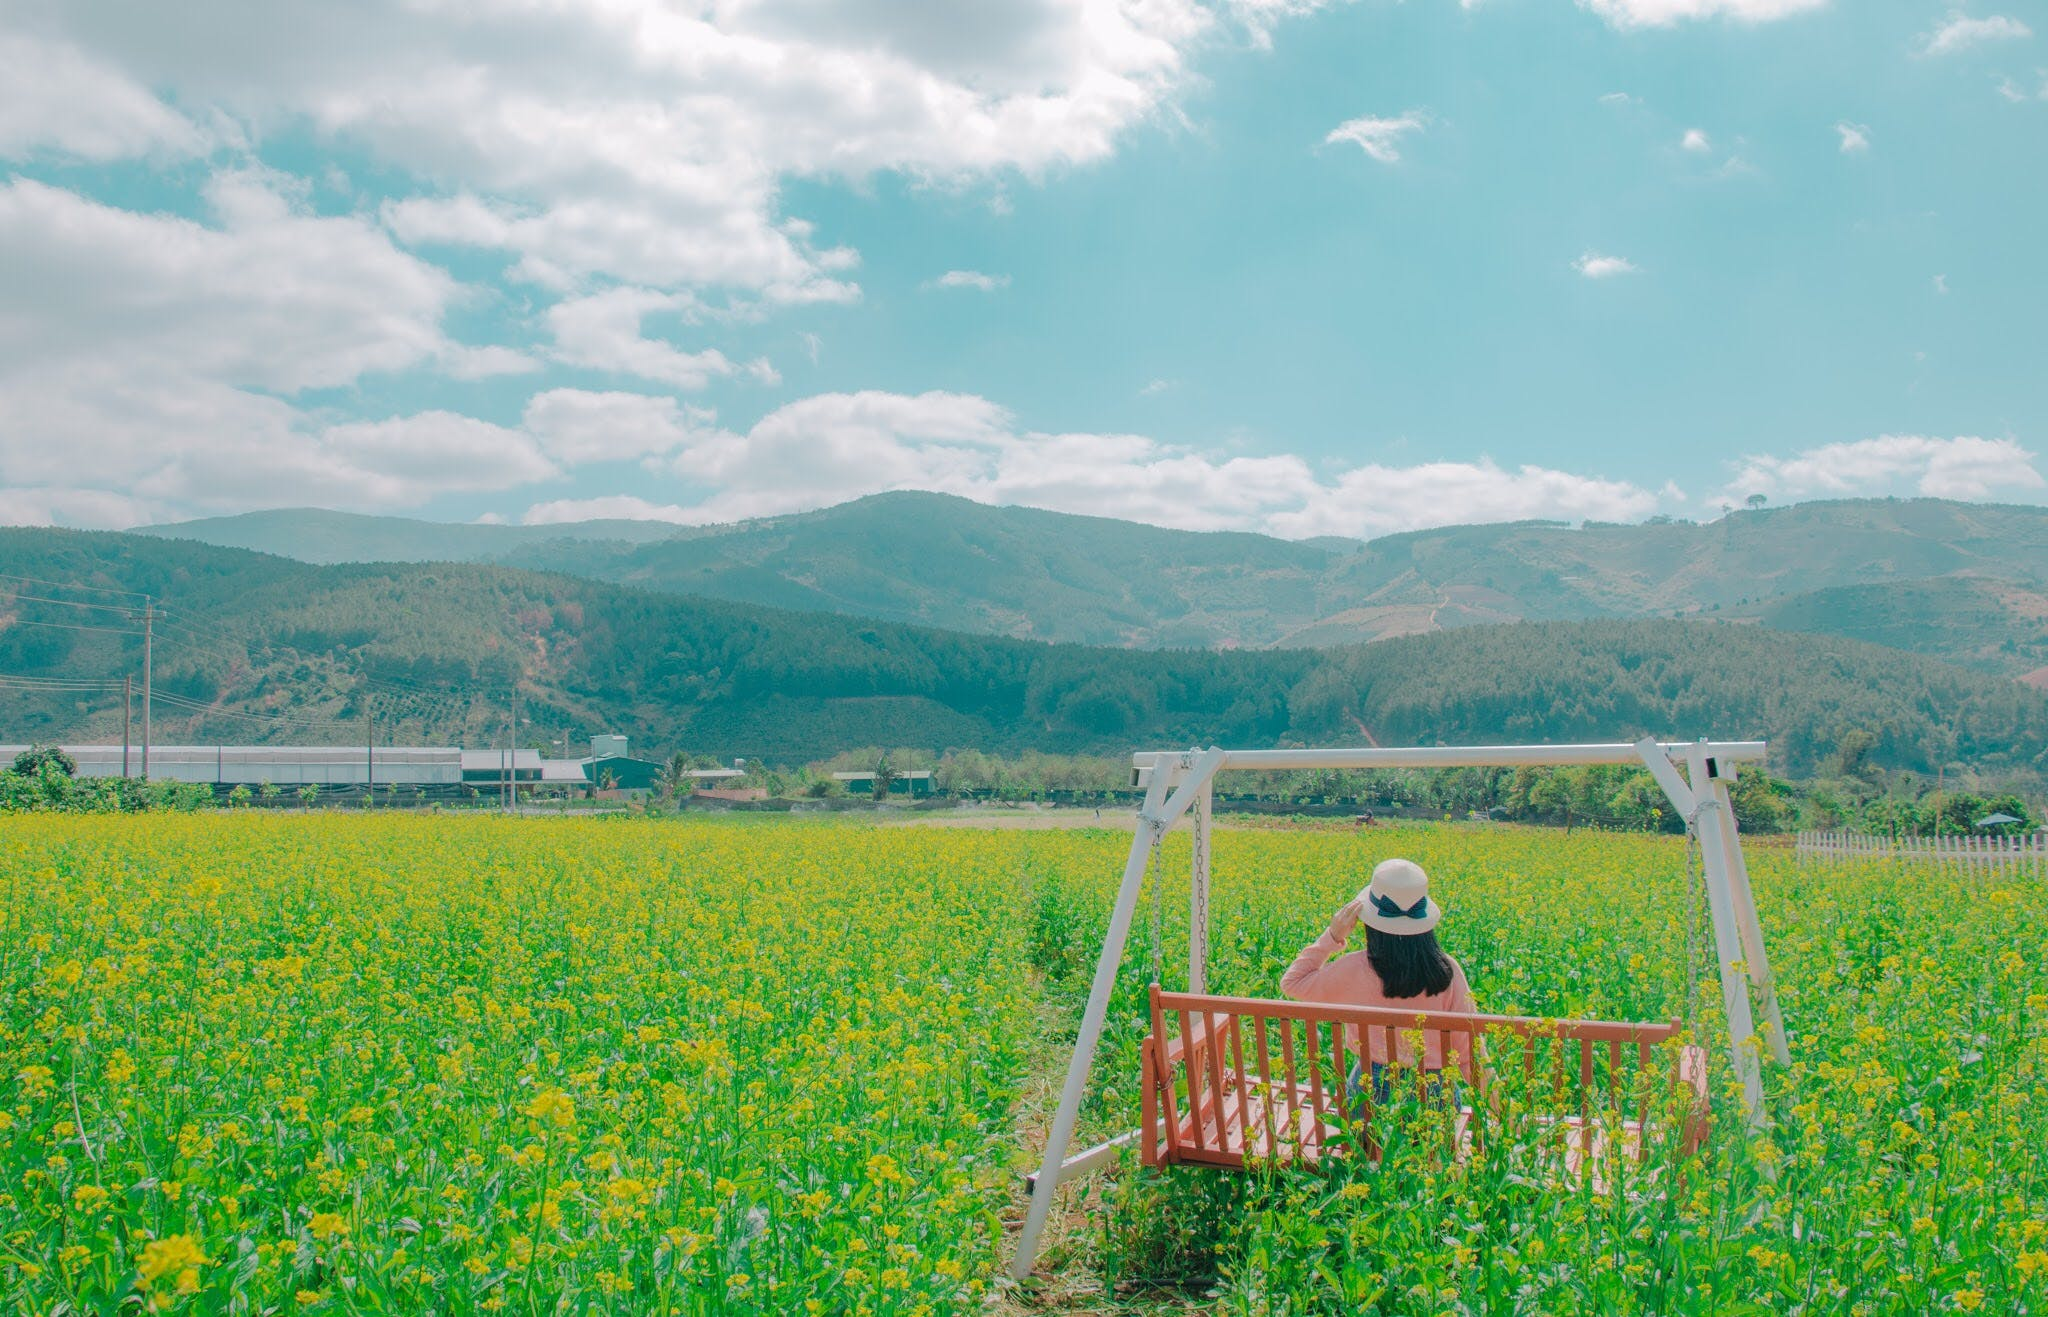 Woman Sits on Brown Wooden Swing Bench on Yellow Petaled Flower Field